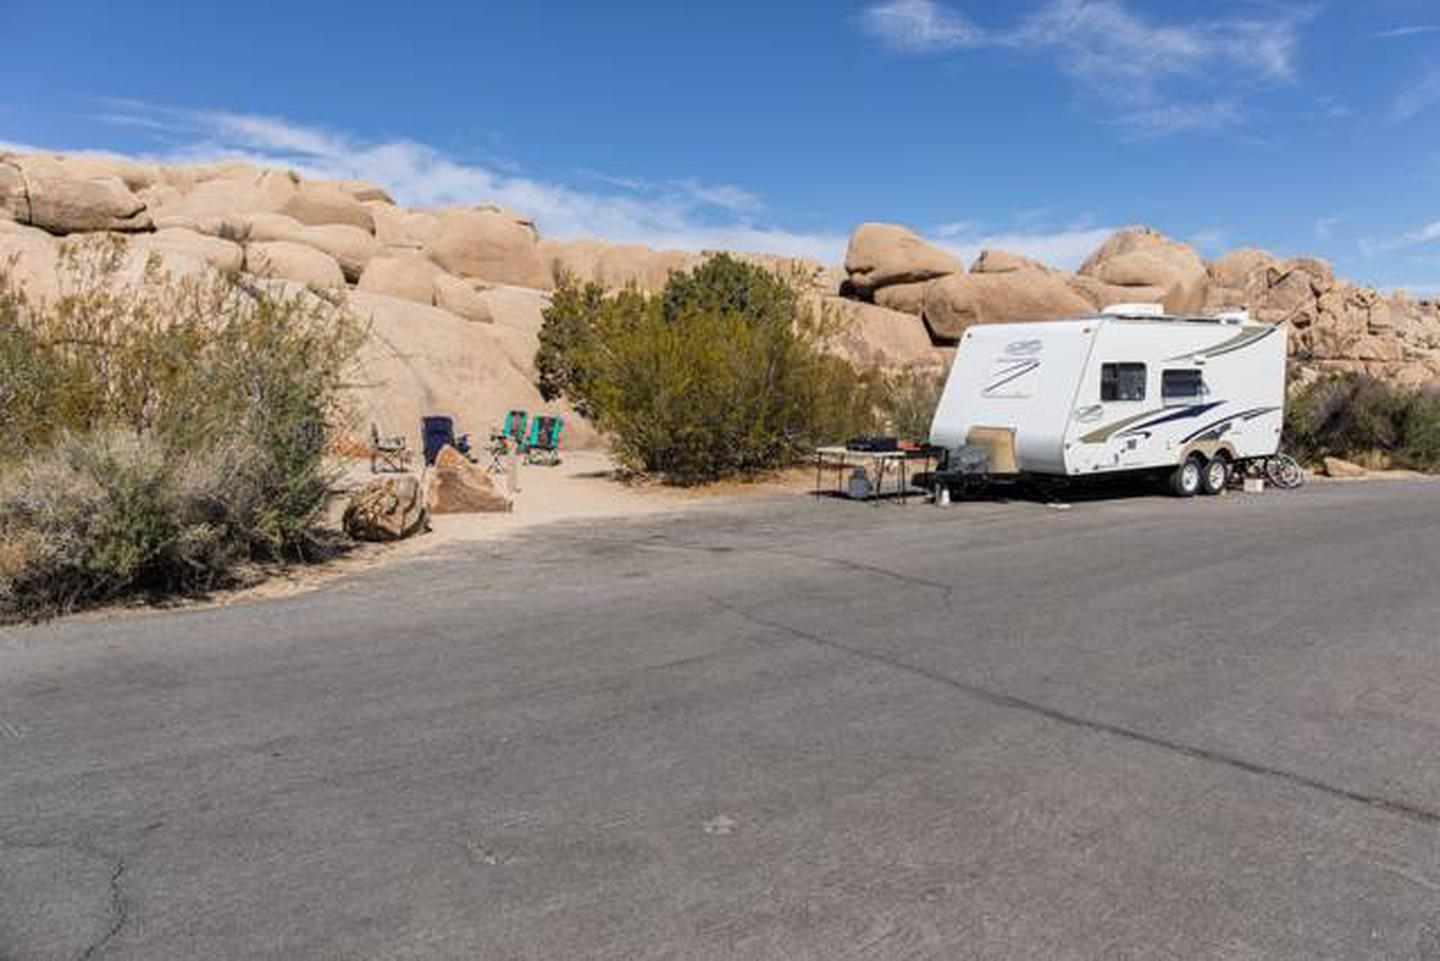 Jumbo Rocks site 80Parking space for campsite